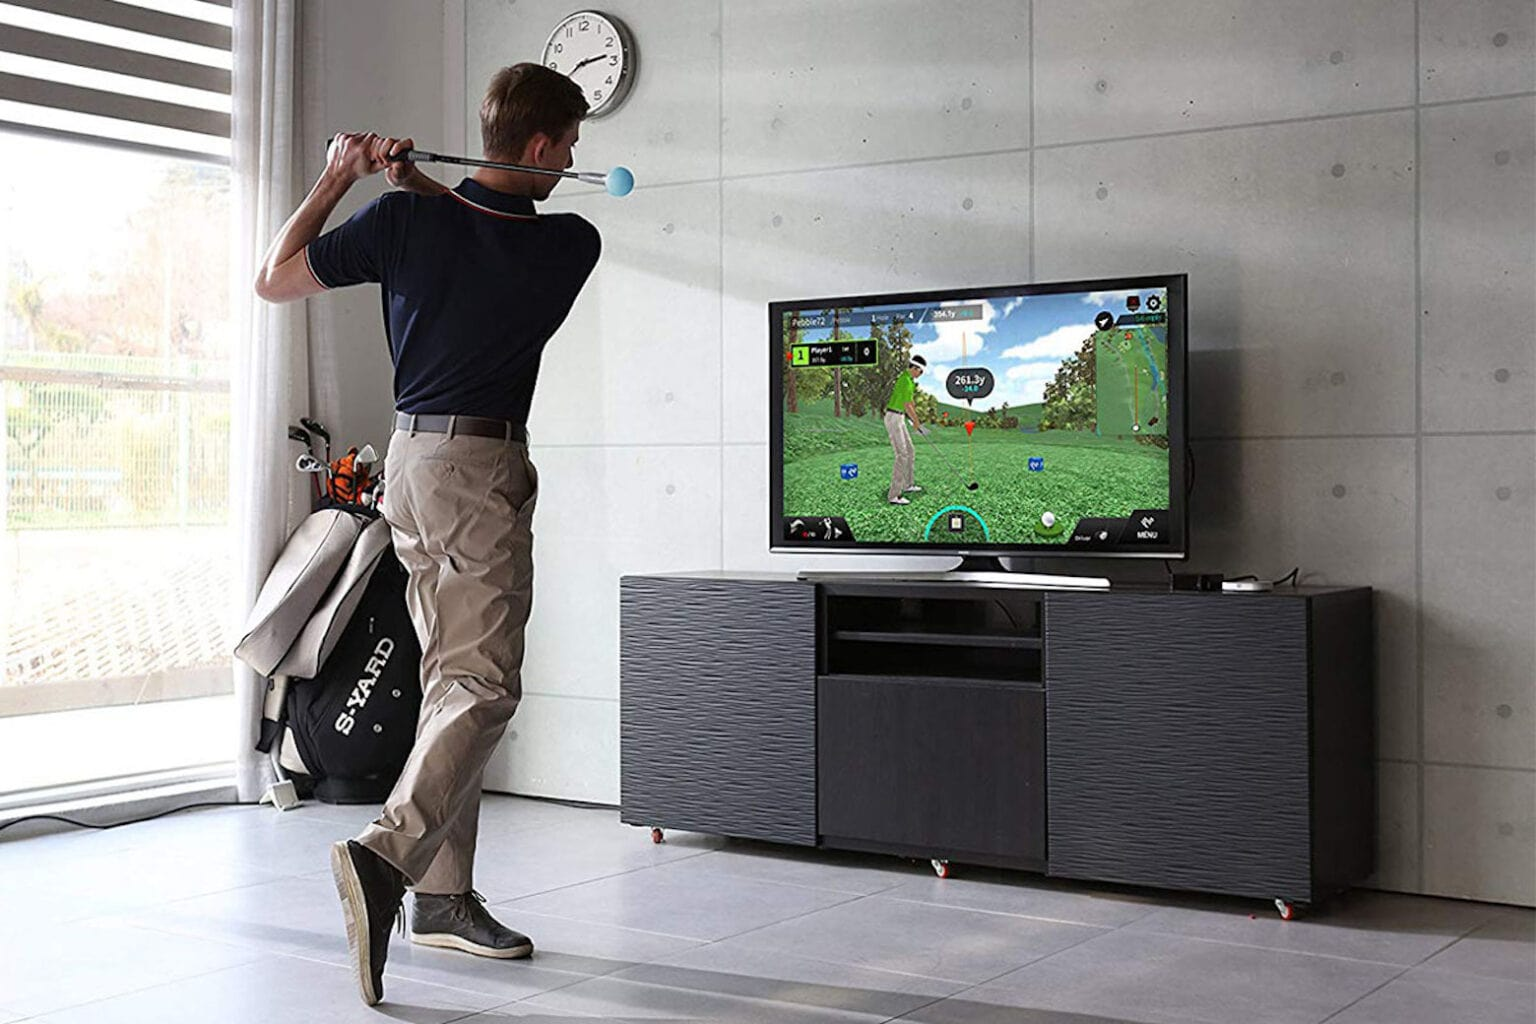 The PhiGolf- Mobile & Home Smart Golf Simulator with Swing Stick: This golf simulator is the perfect indoor activity for fans of the game.